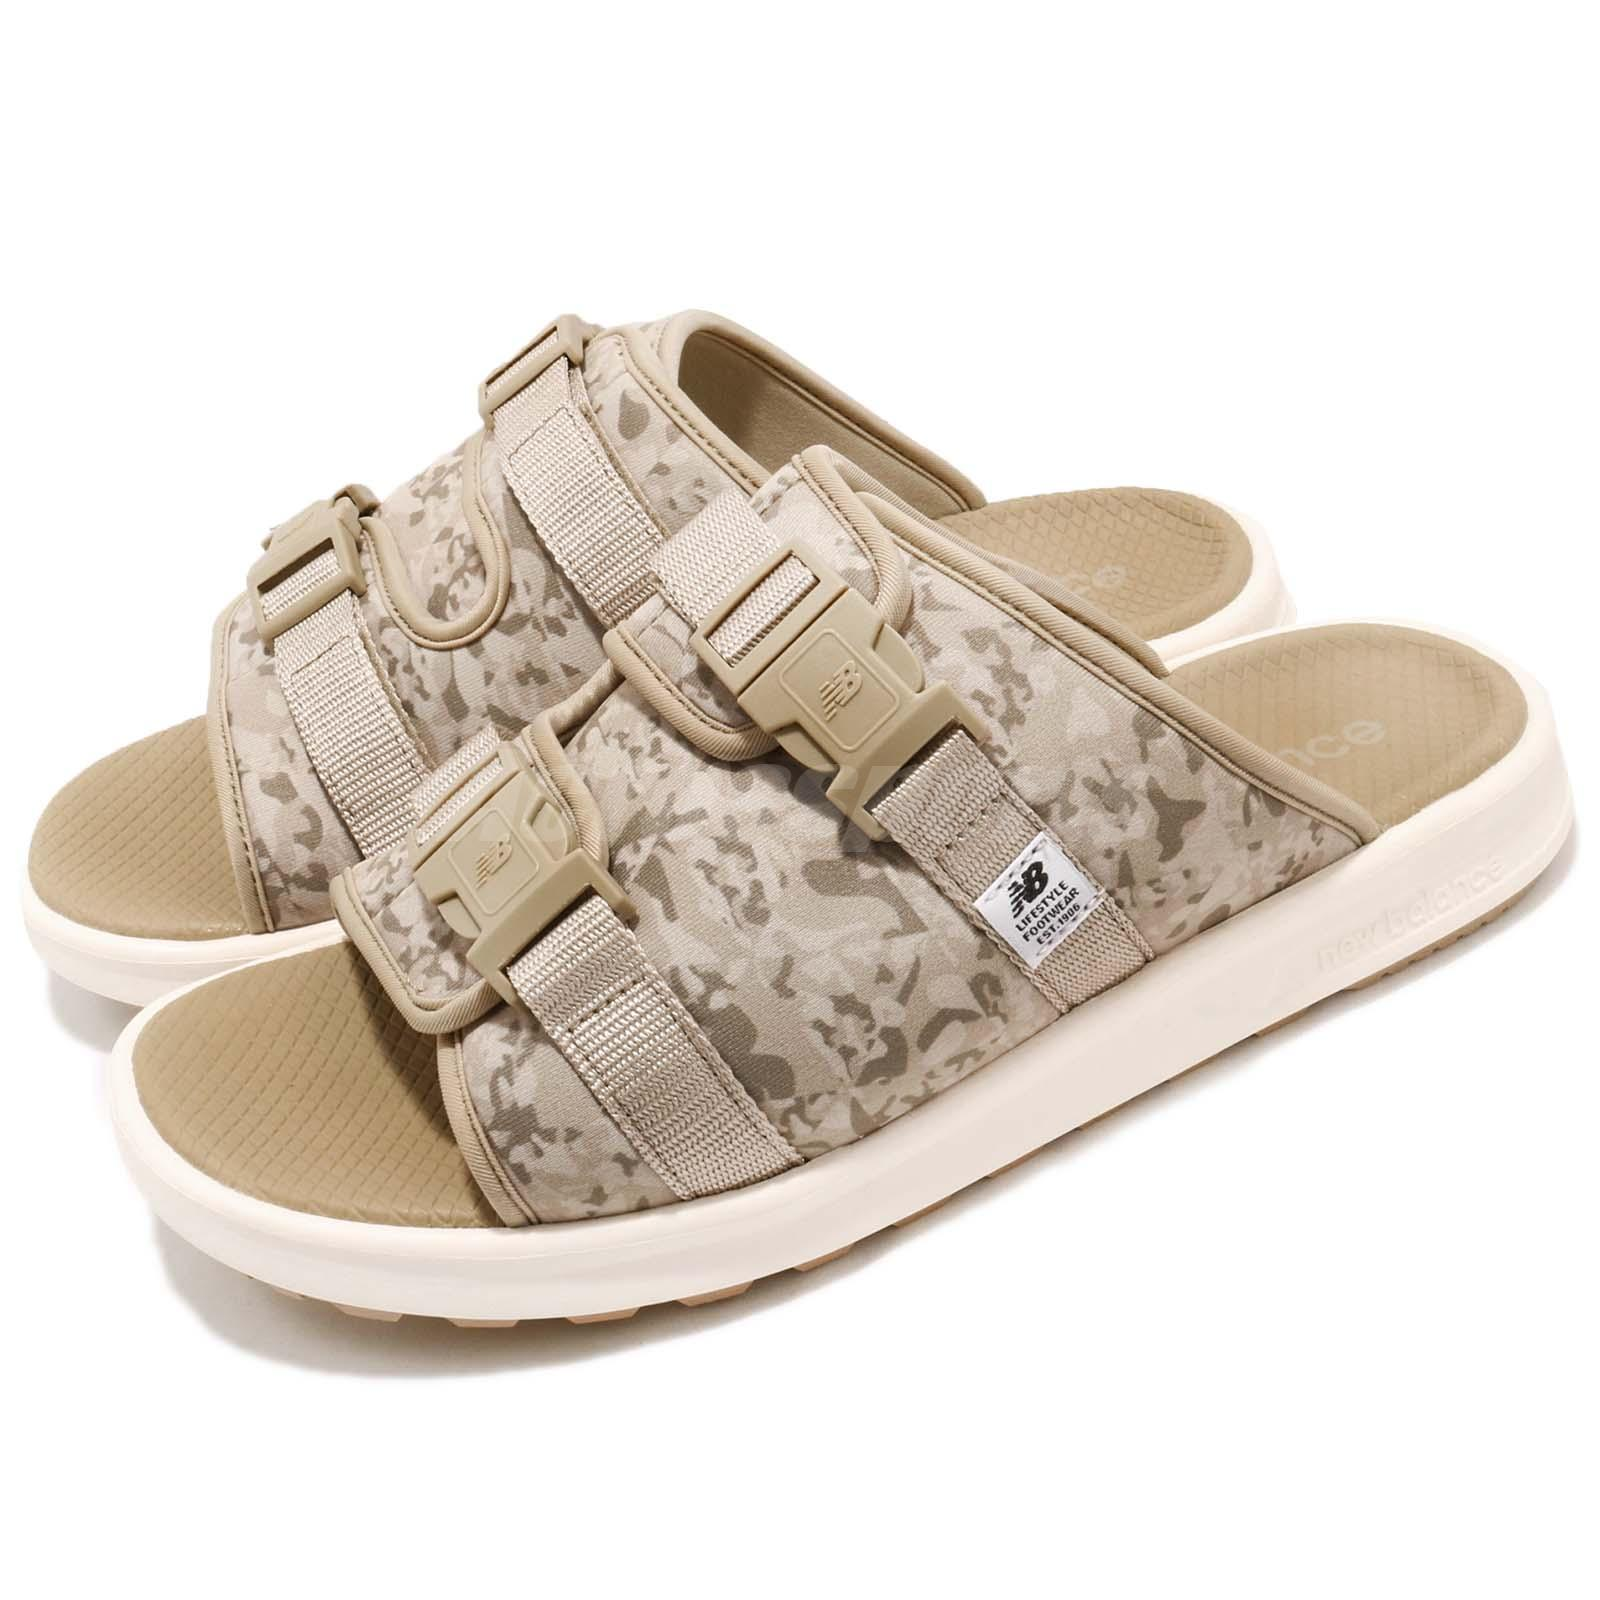 prix le plus bas c5b10 1935f Details about New Balance SDL330BE D Khaki Ivory Camouflage One Click Men  Sandals SDL330BED